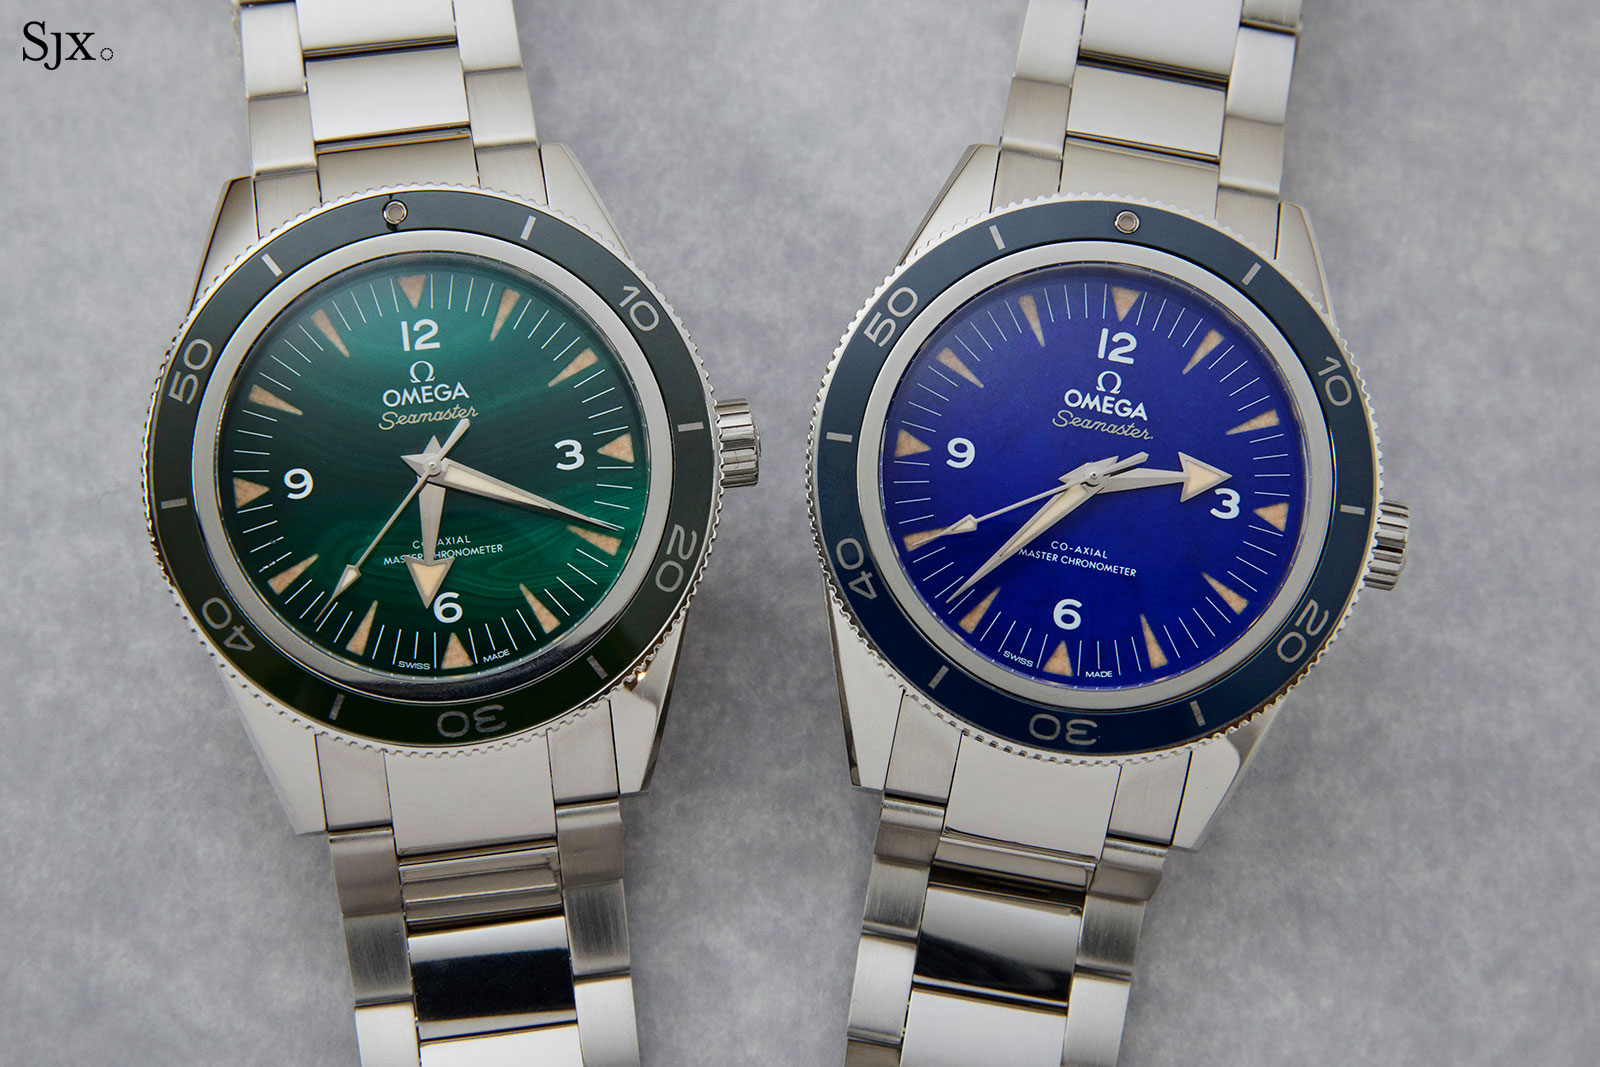 bff6e07a9afe Hands-On with the Omega Seamaster 300 Malachite and Lapis Lazuli ...